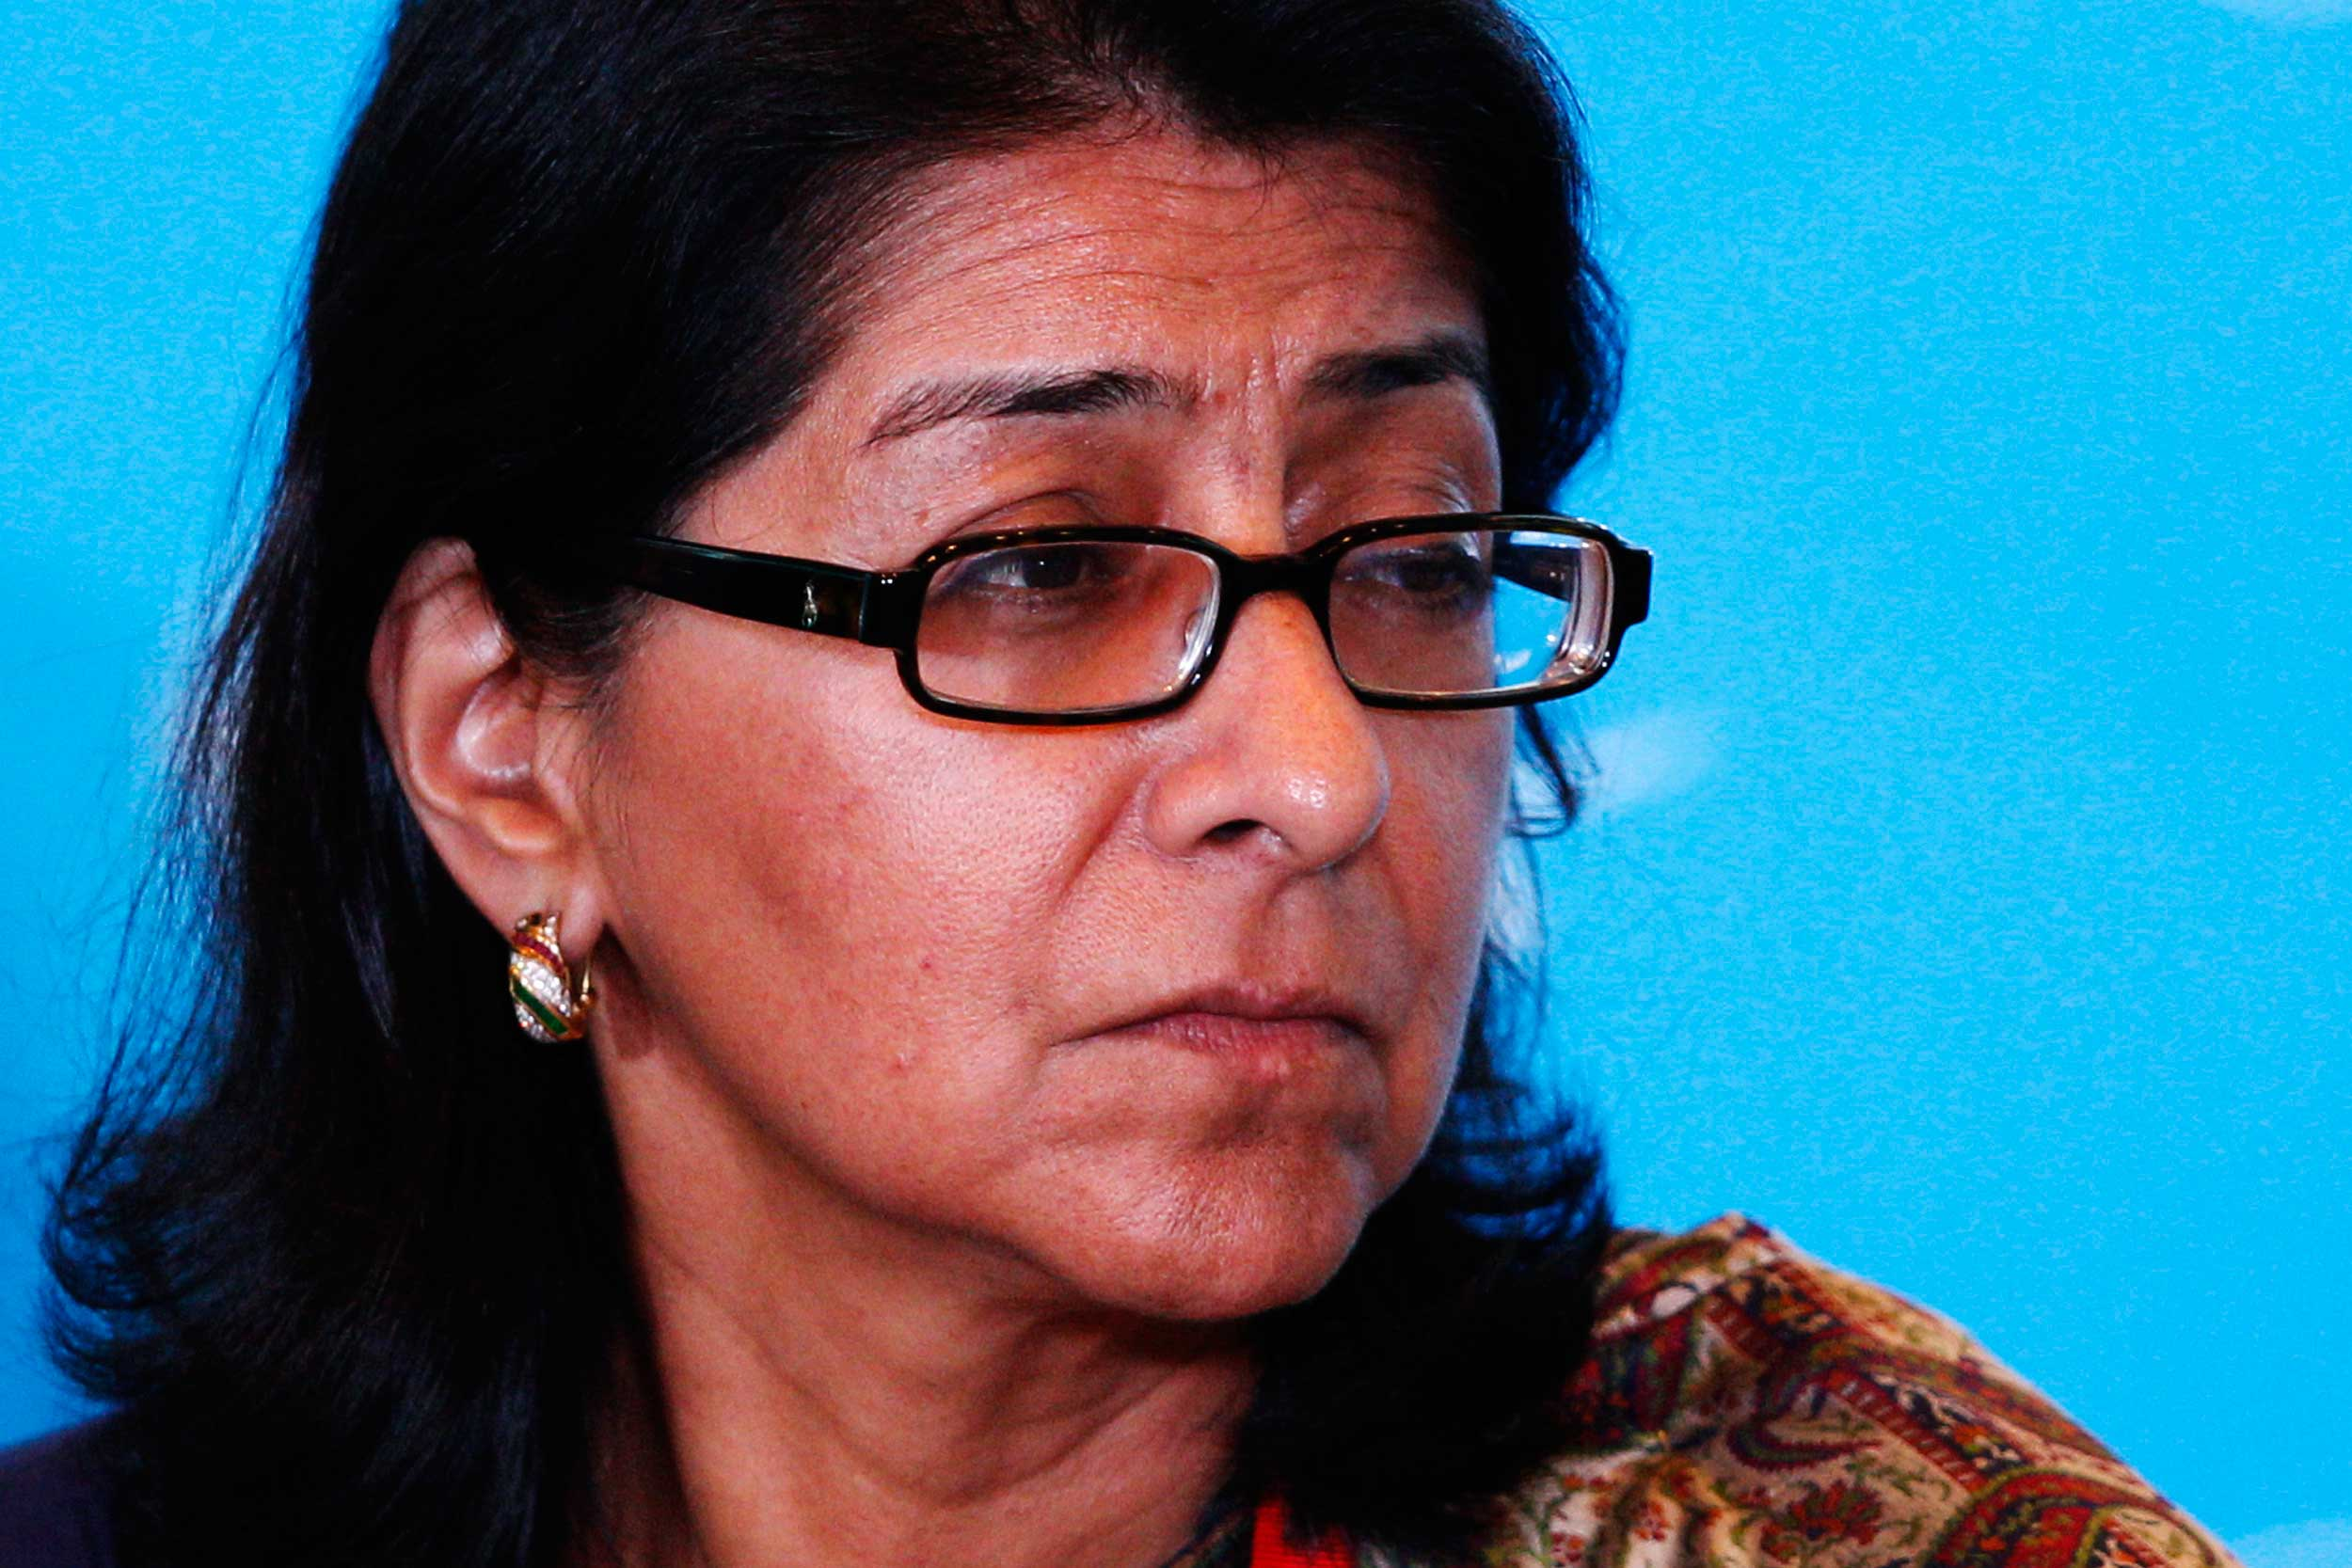 Naina Lal Kidwai to step down as HSBC India head